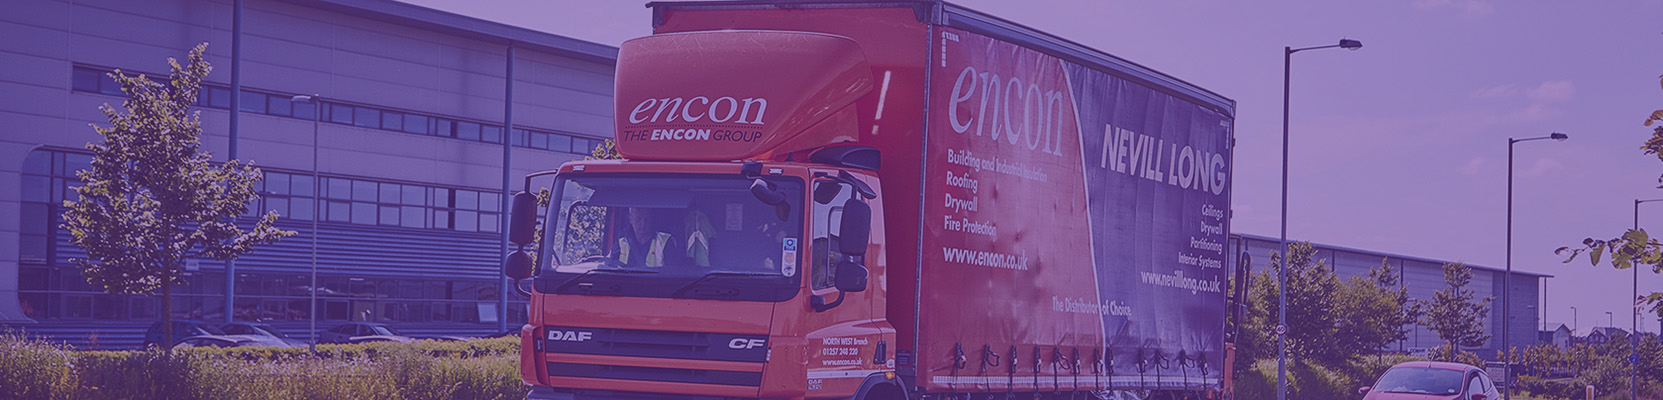 Encon Insulation and Nevill Long truck heading out on deliveries